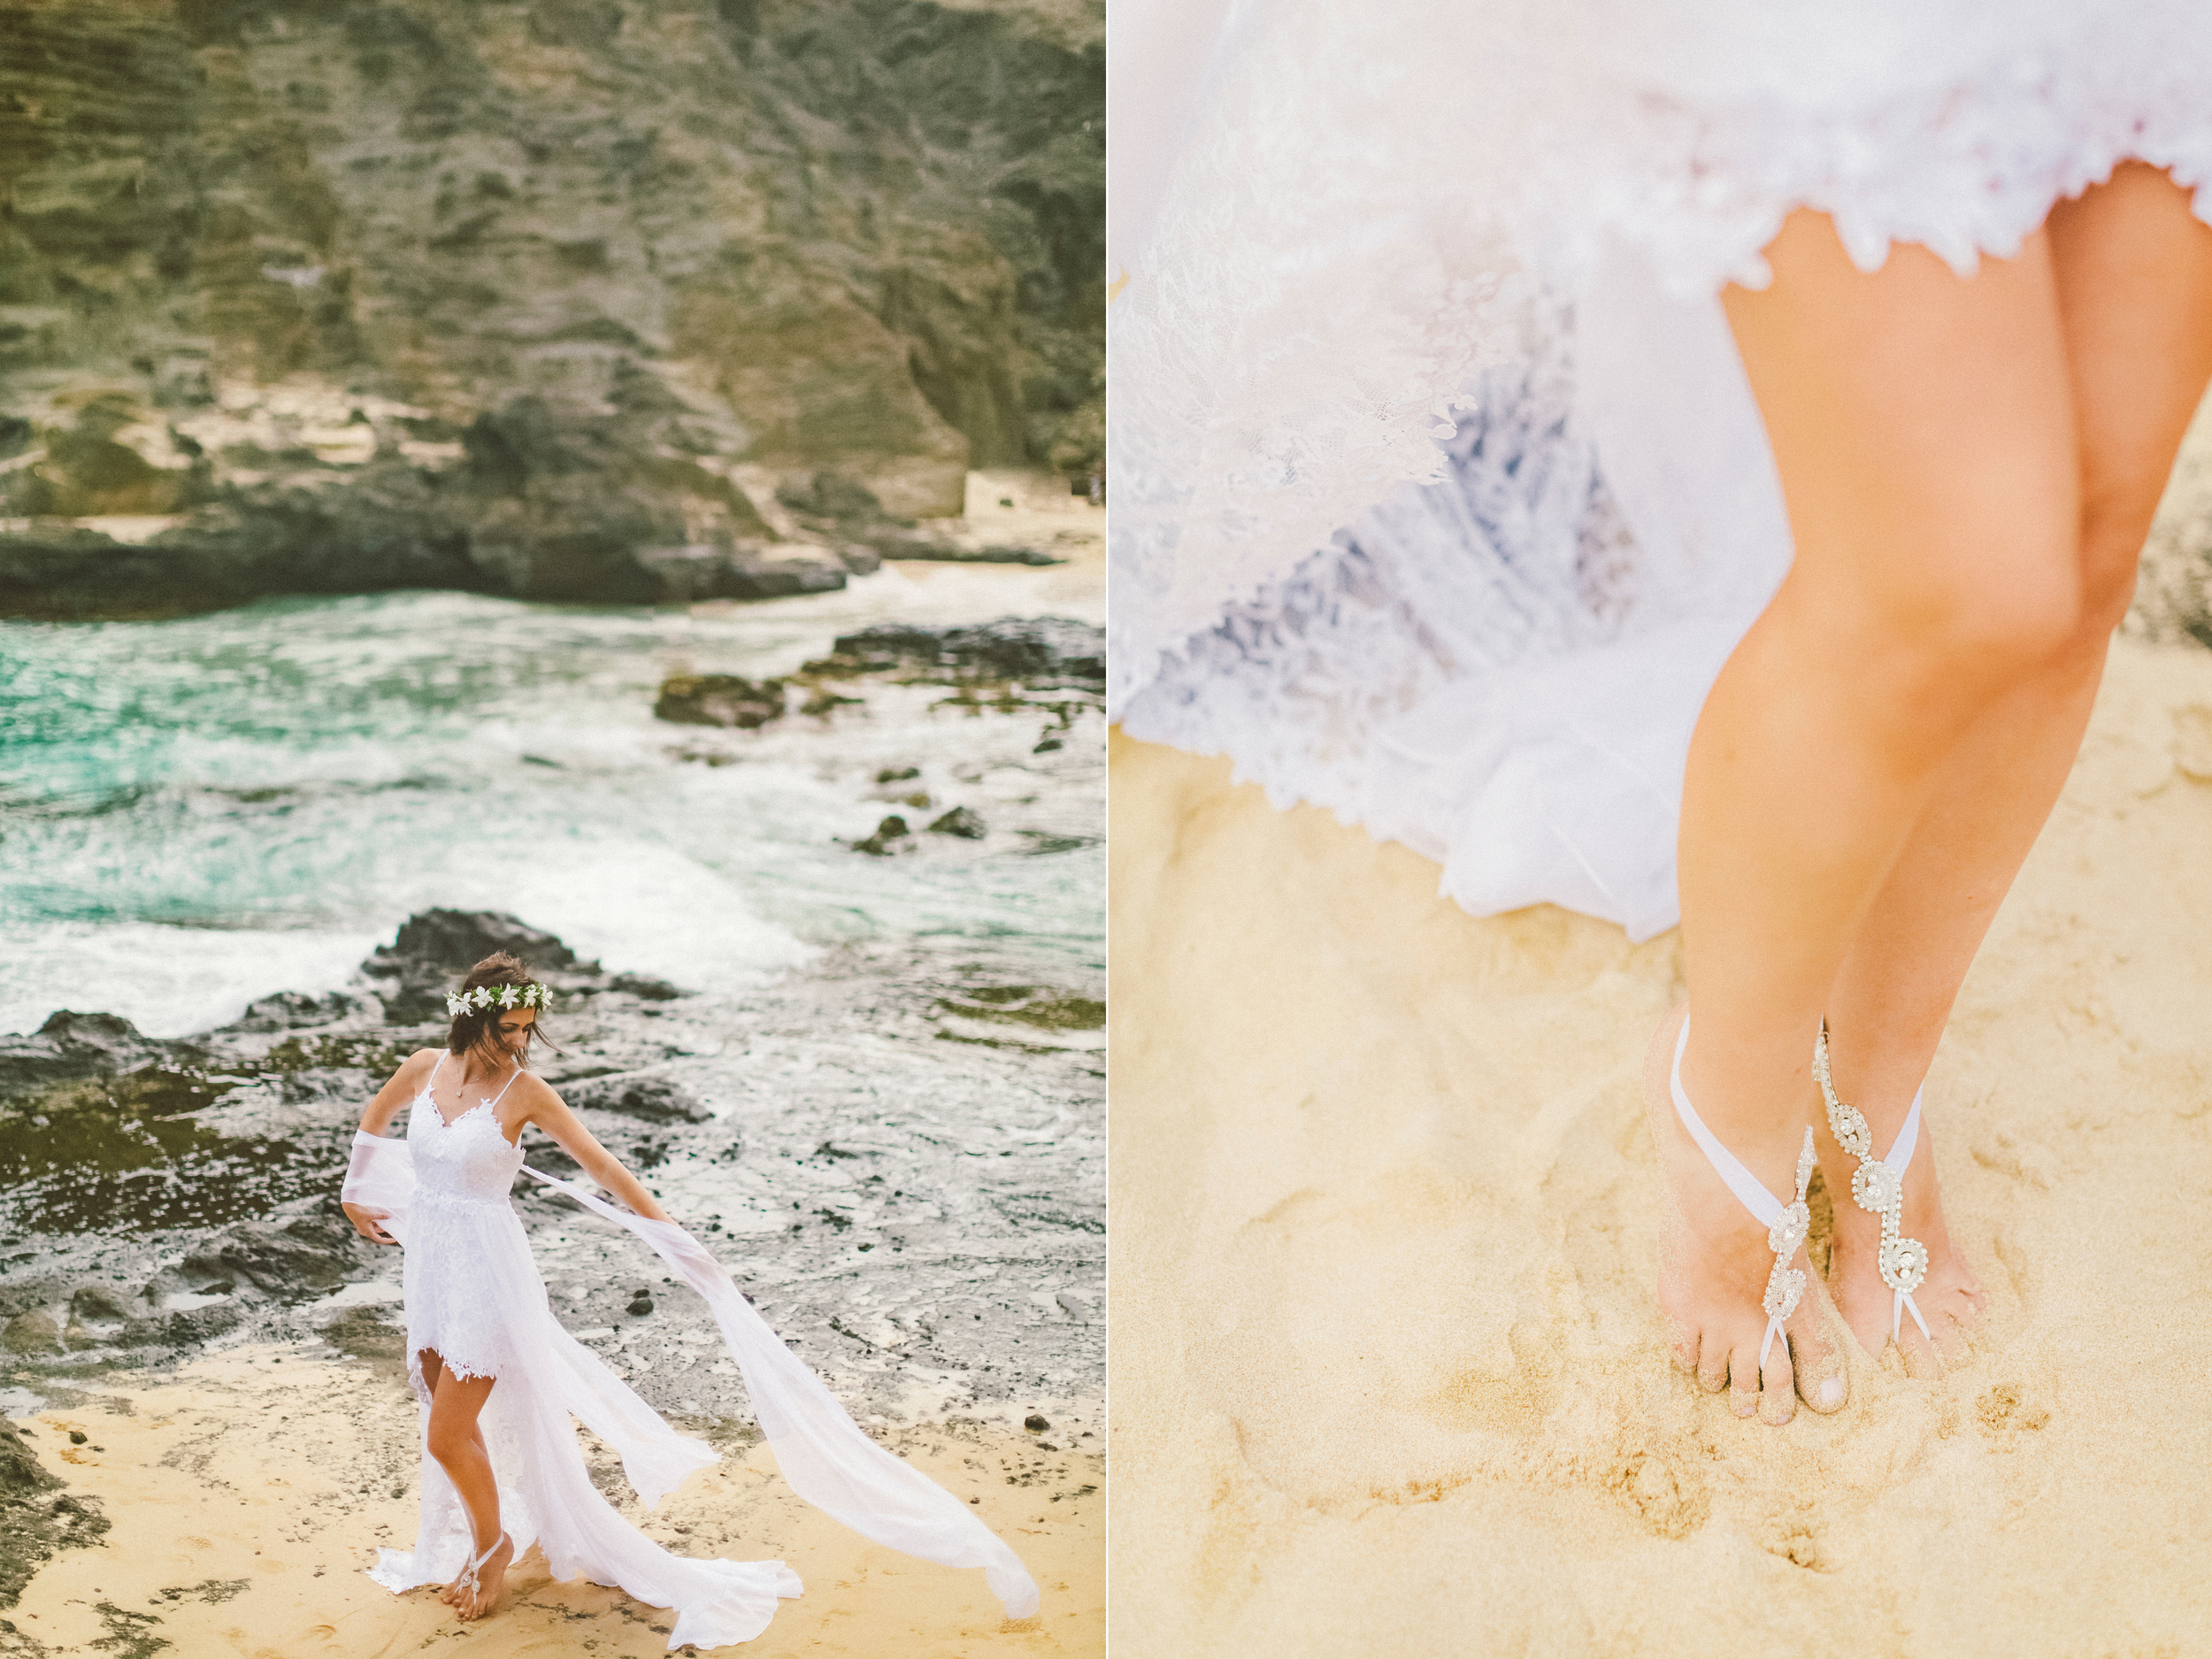 angie-diaz-photography-oahu-destination-wedding-11.jpg